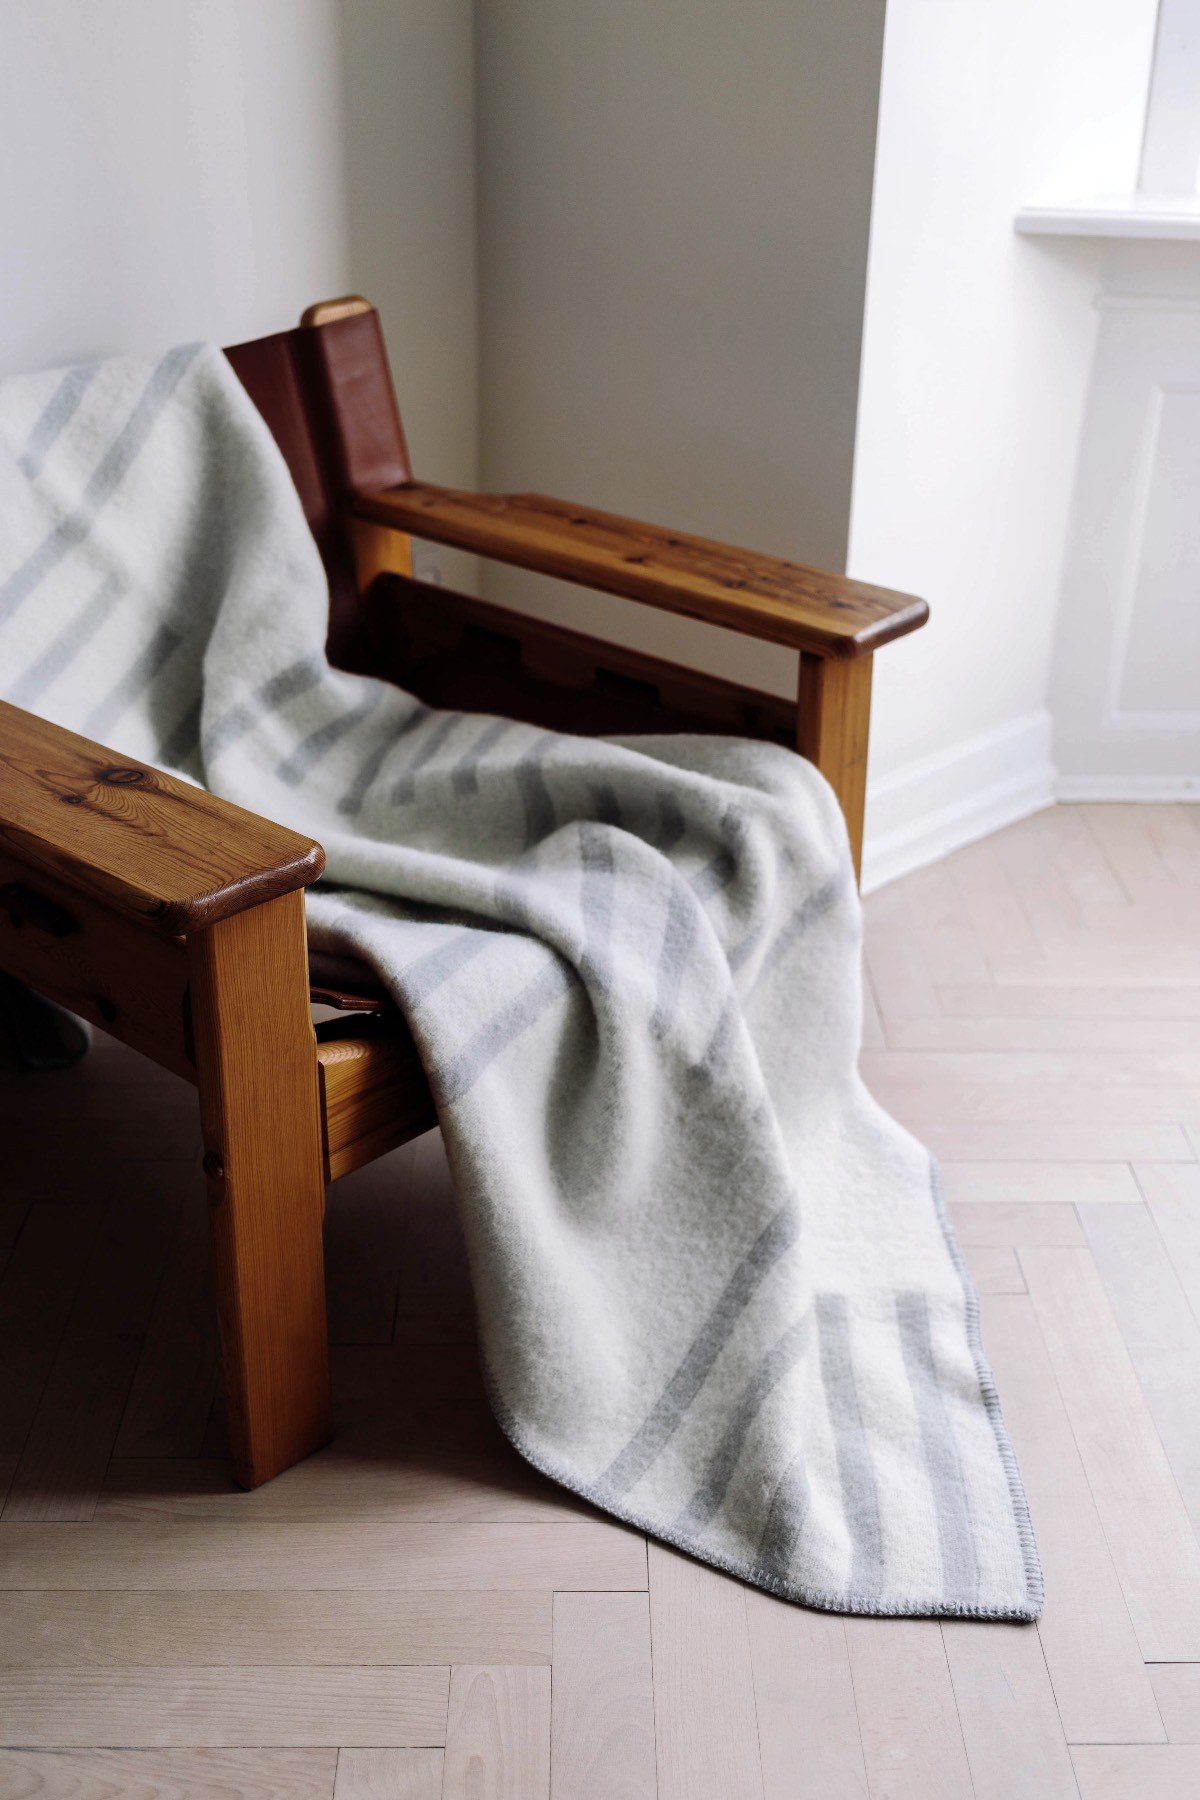 A cream and gray colored Classic wool blanket laying on a wooden armchair.